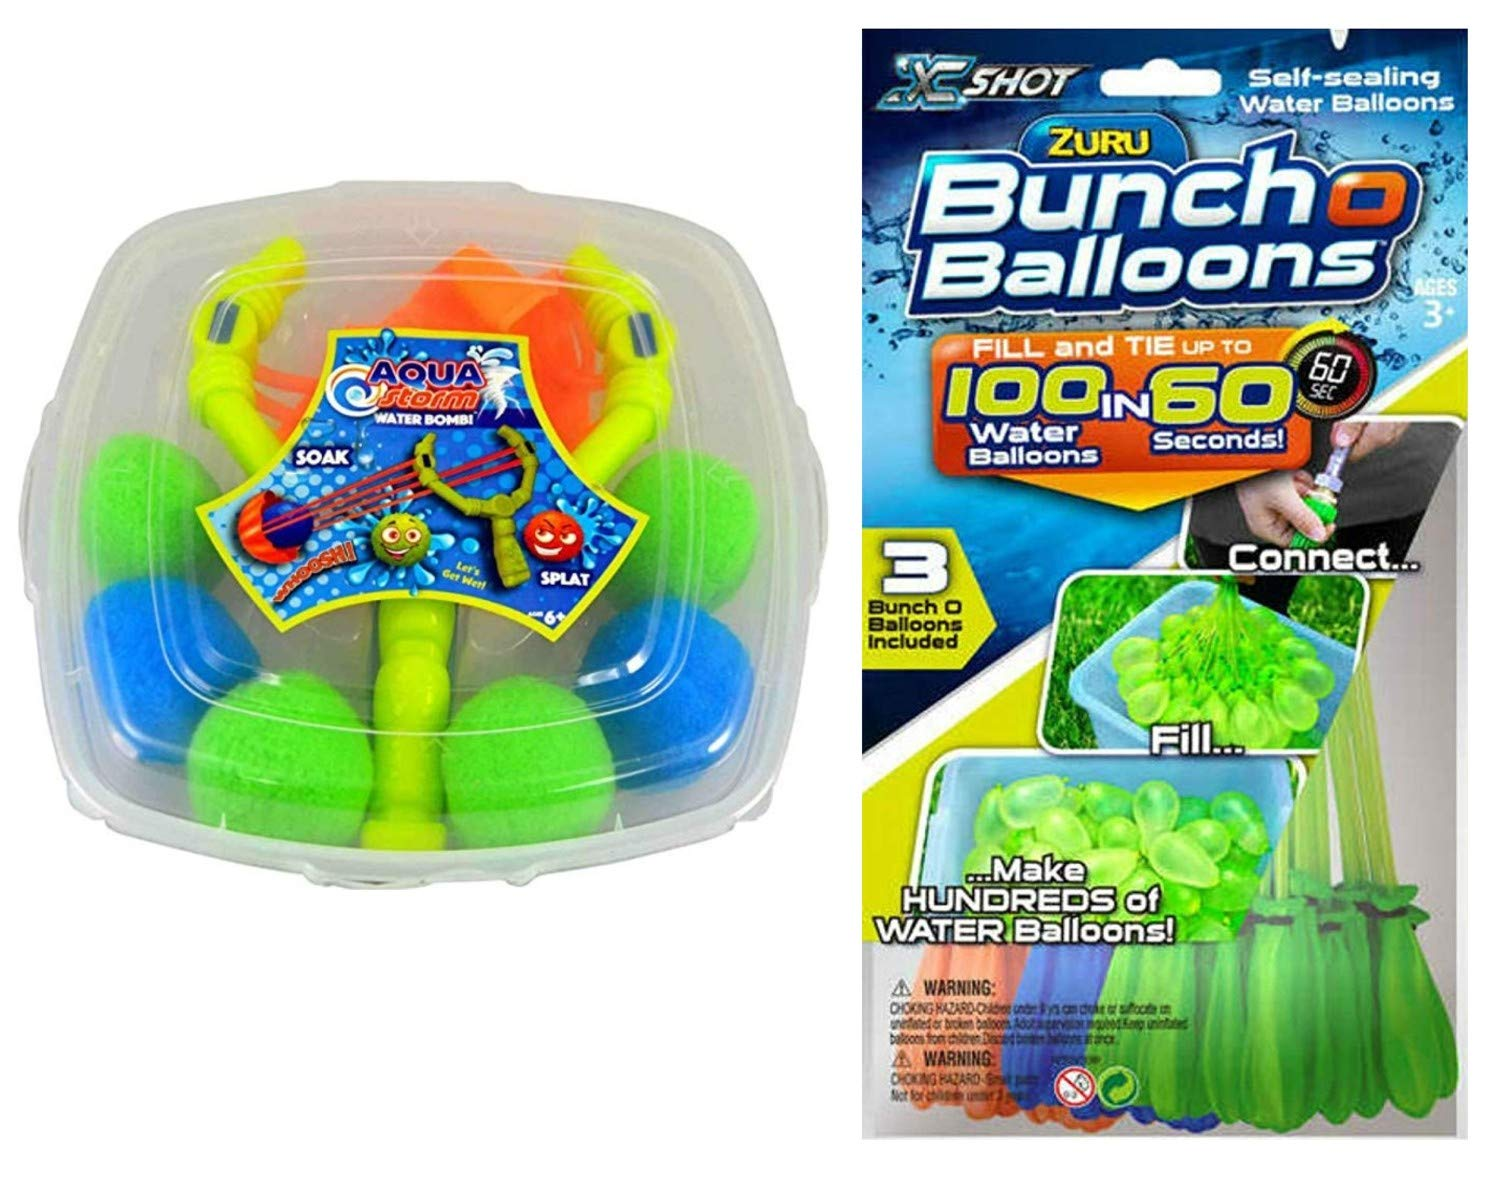 ZURU Bunch O Balloons Self Sealing Water Balloons Bundled with One Water Balloon Slingshot Launcher Set - 105 Total Quick Fill Water Balloons Assorted Colors (2 Items) by ZURU